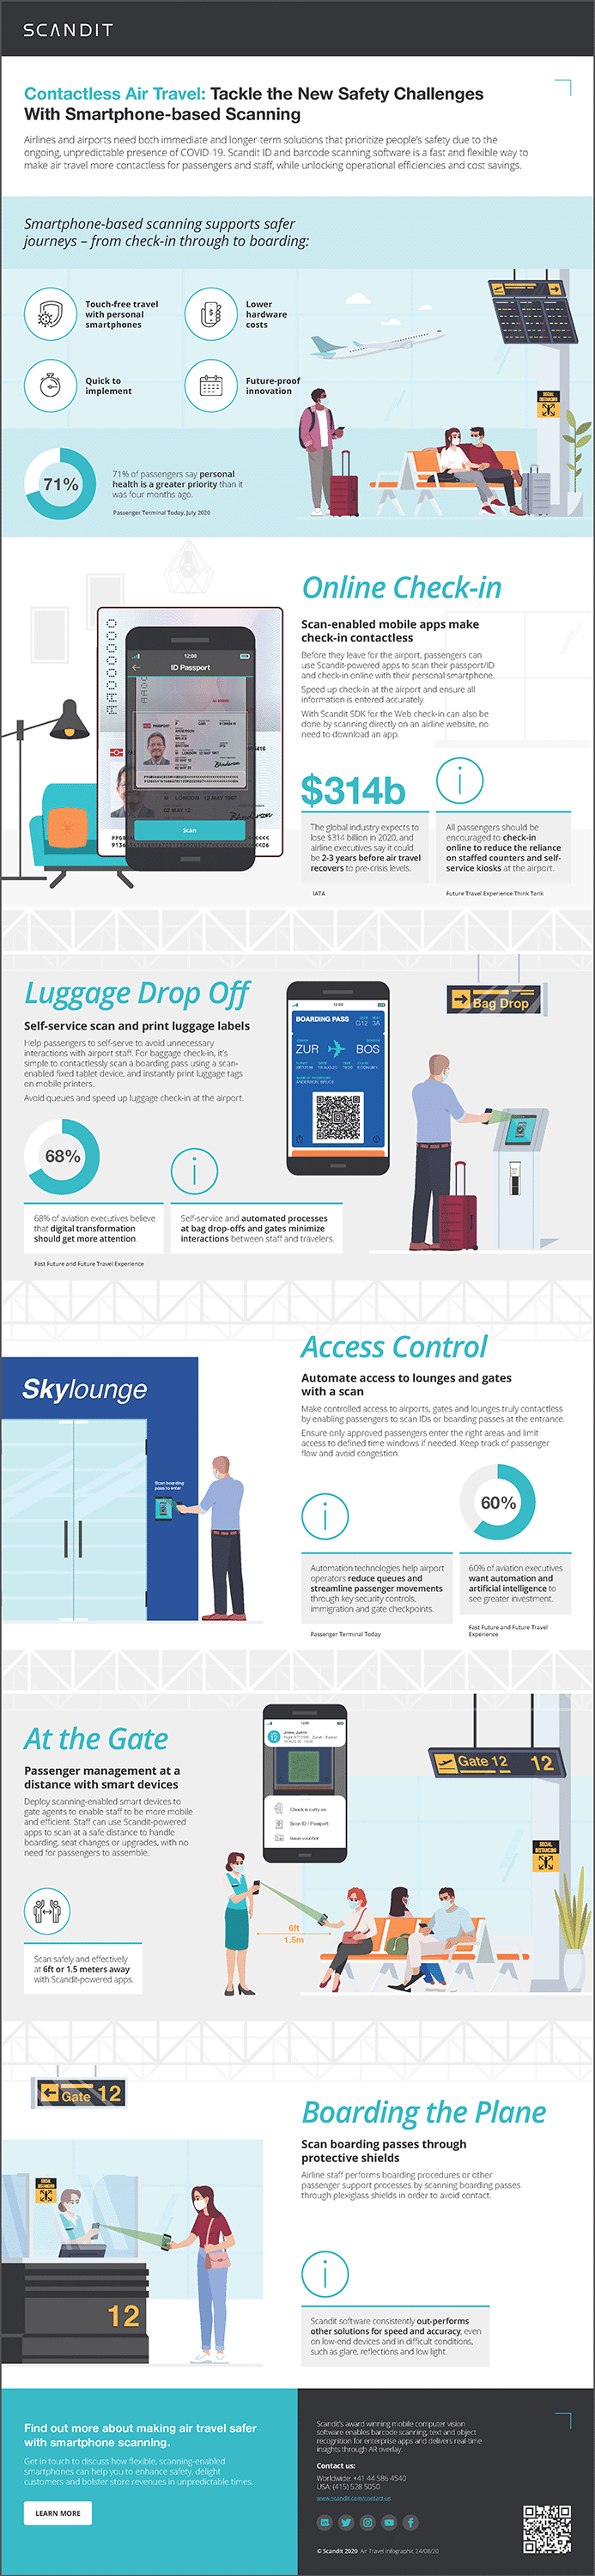 Contactless Air Travel: Tackle the New Safety Challenges With Smartphone-based Scanning